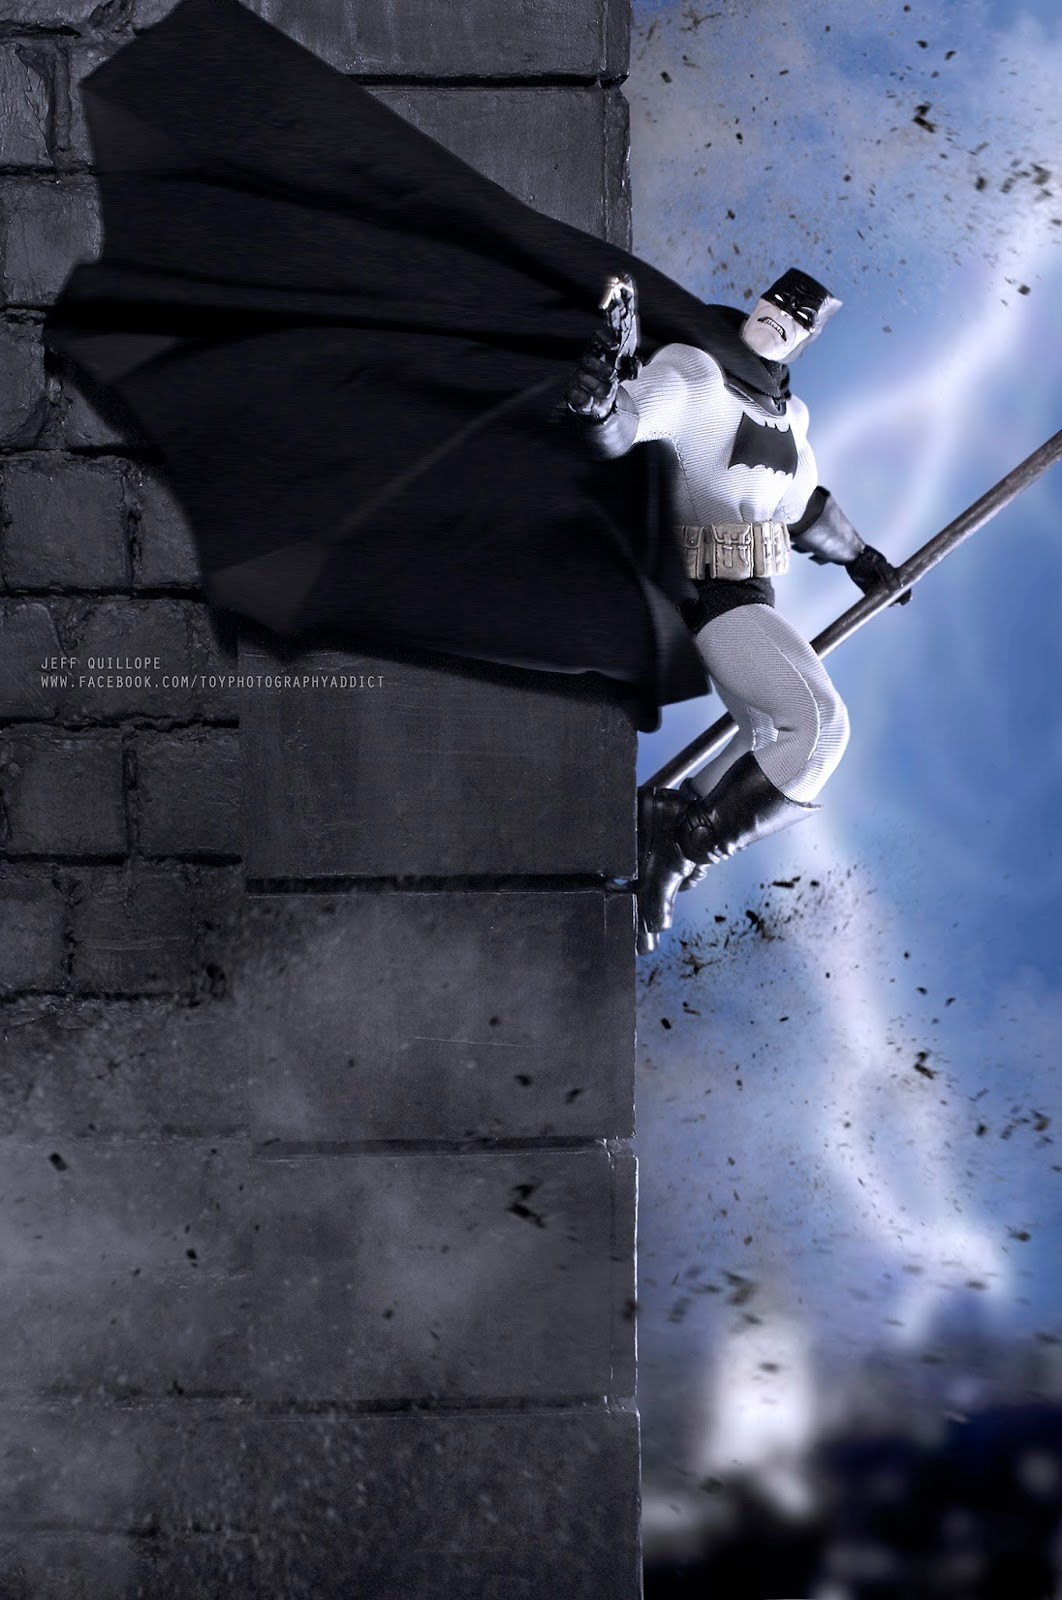 Toy Photography Addict: The Dark Knight Returns By Mezco